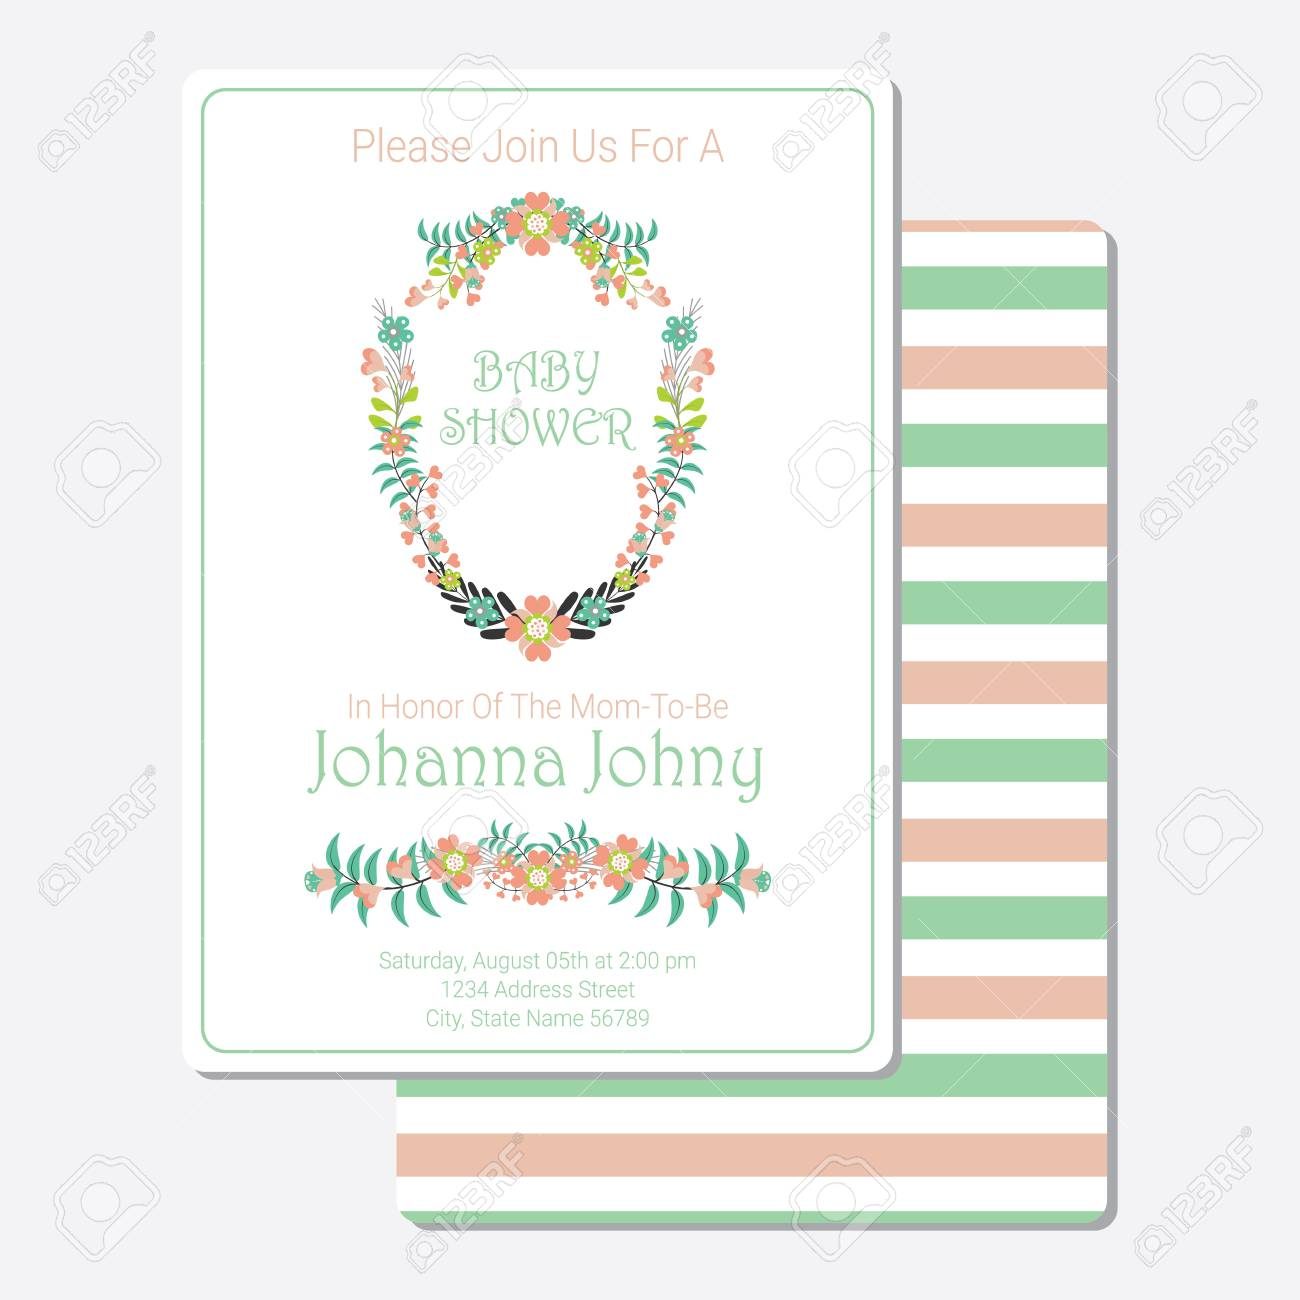 Baby Shower Invitation Card Vector Design Template With Tosca And Pink  Flowers Wreath Stock Vector